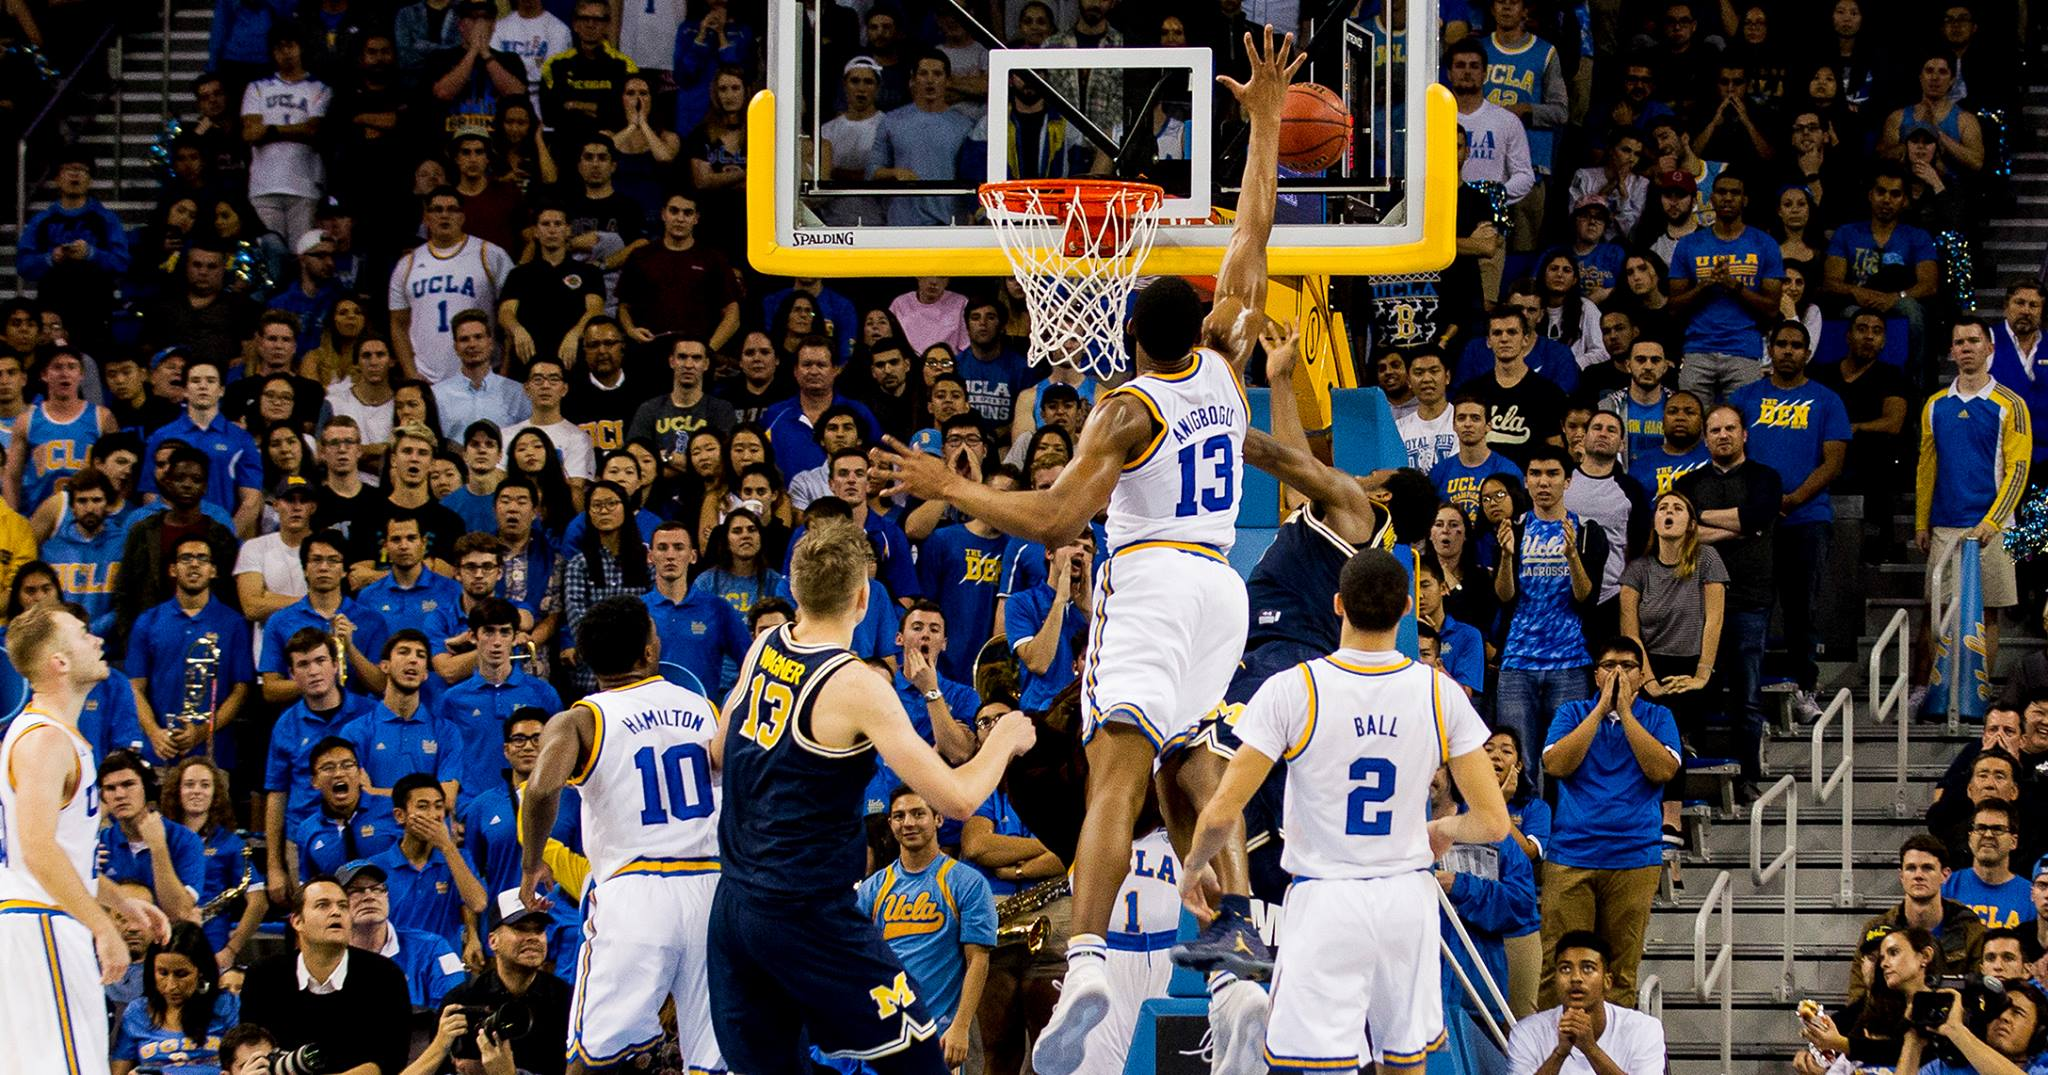 Ucla guard johnny juzang, the breakout star of the 2021 ncaa tournament, announced wednesday night he was withdrawing from the nba draft and returning to the bruins. Bruins Defeat Wildcats In Rematch - San Francisco News